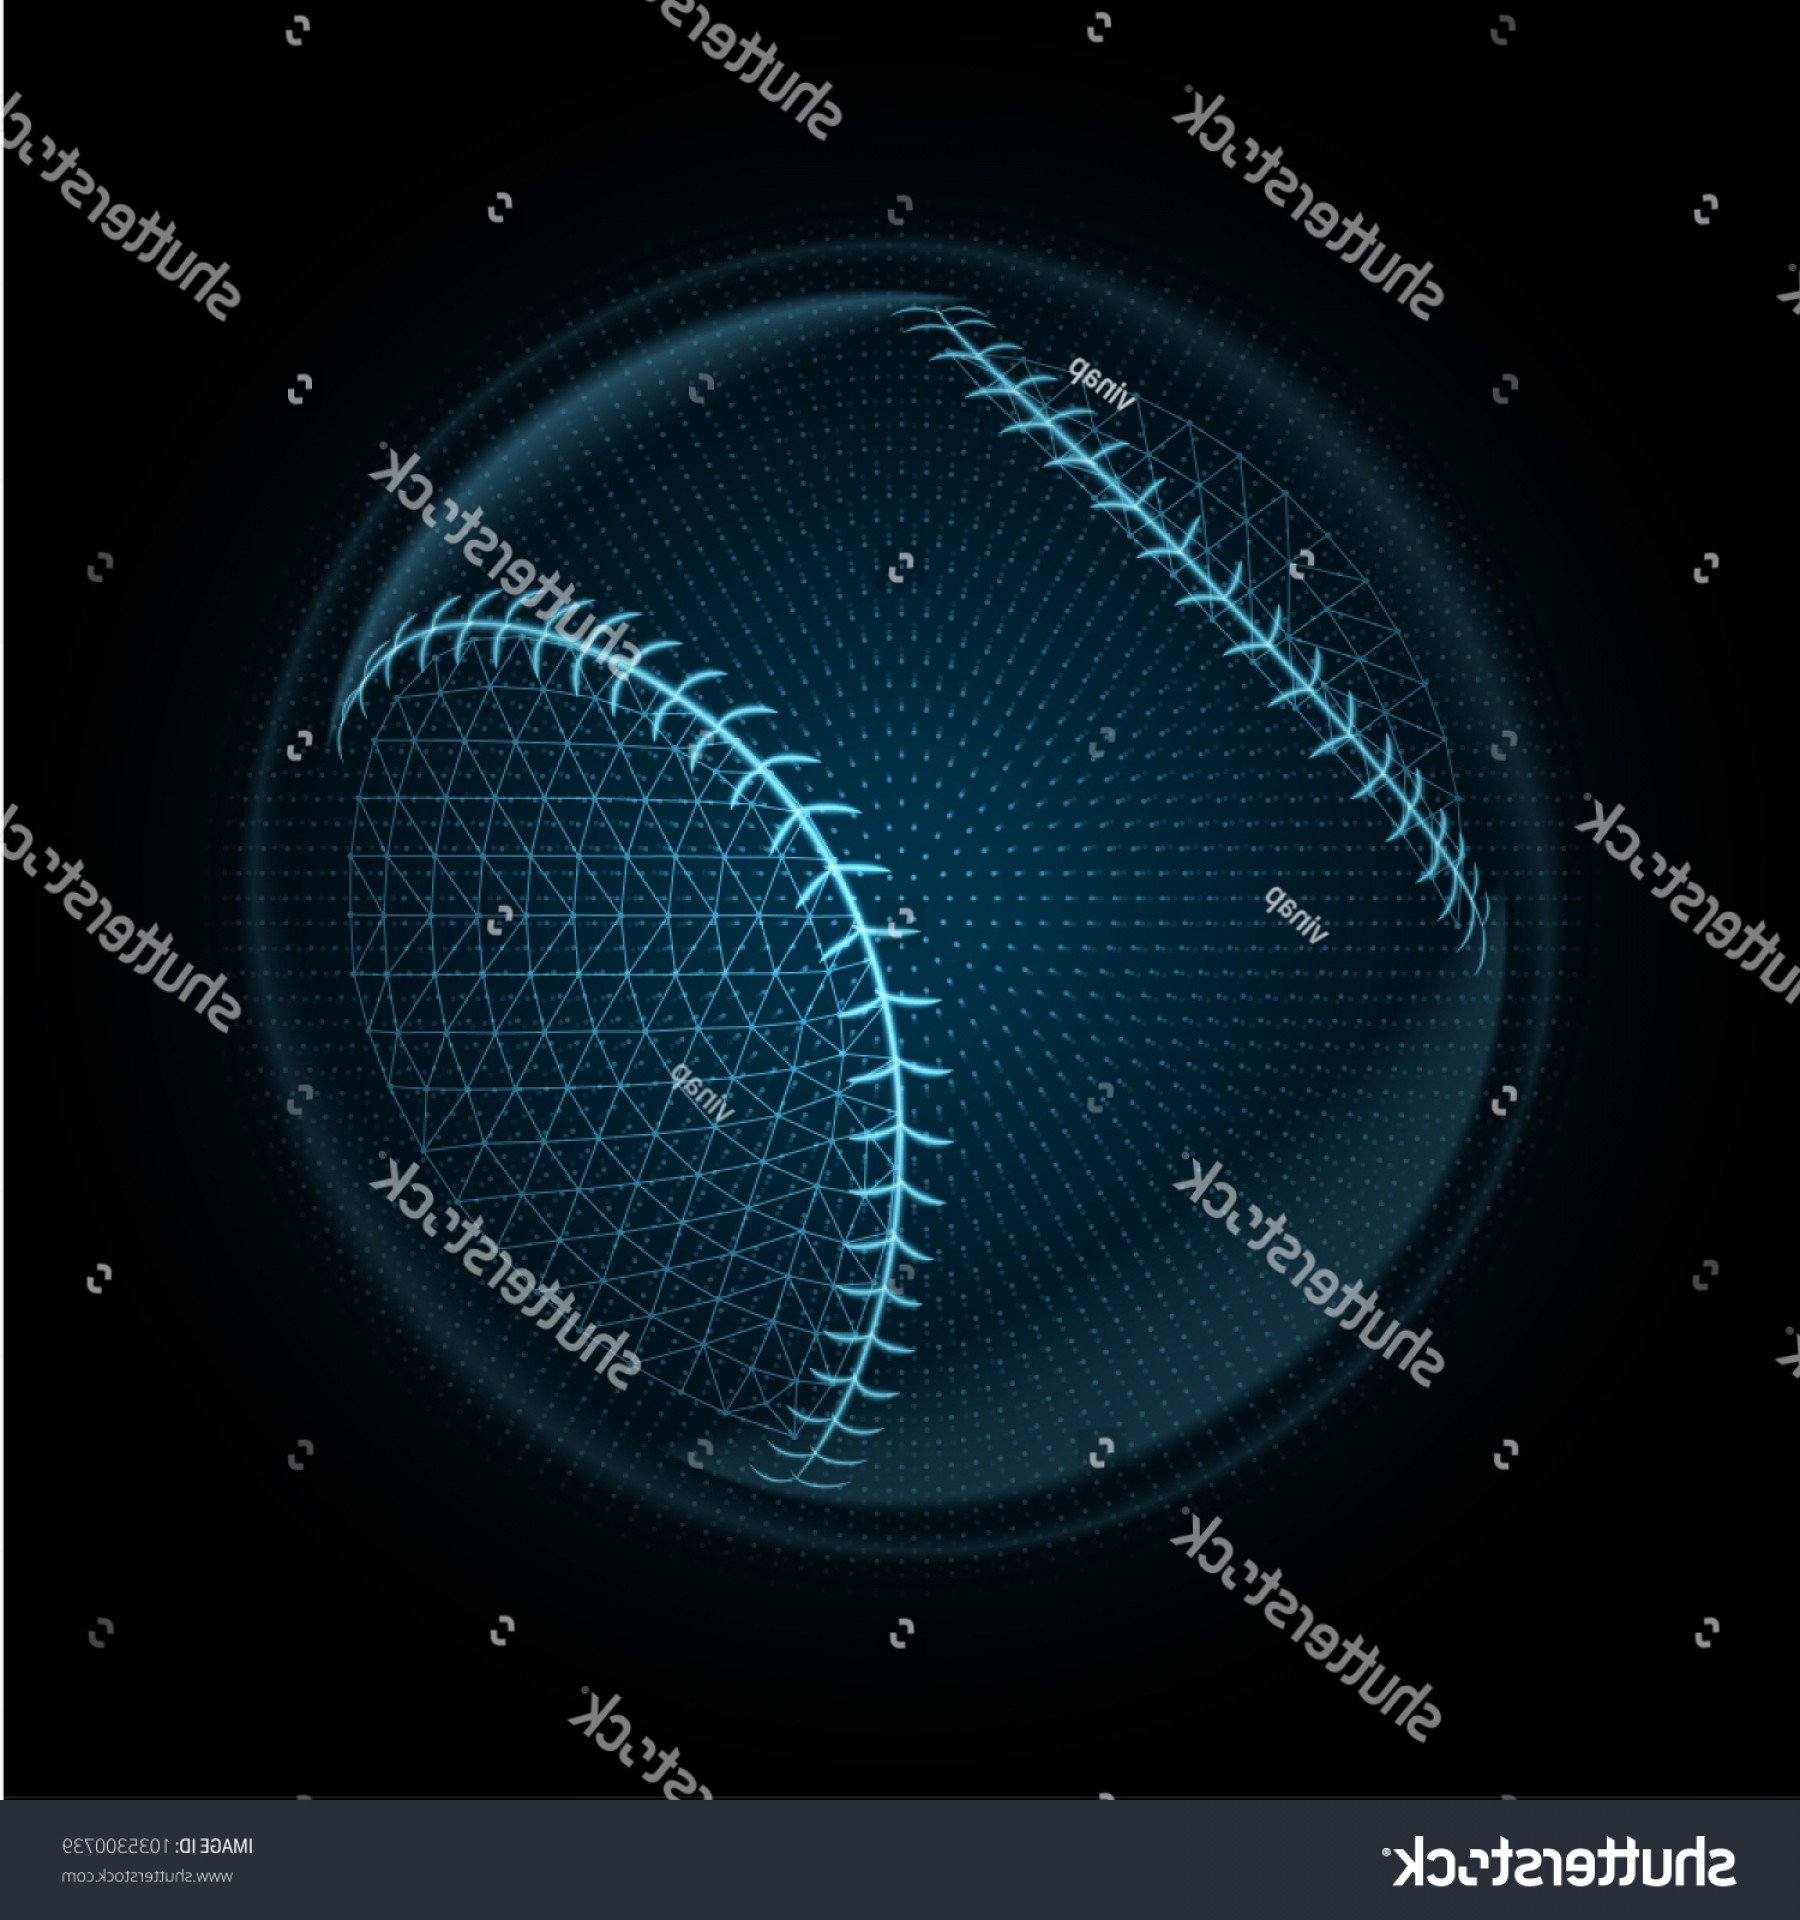 Neon Green Softball Stitches Vector: Vector Image Baseball Ball Made Illuminated